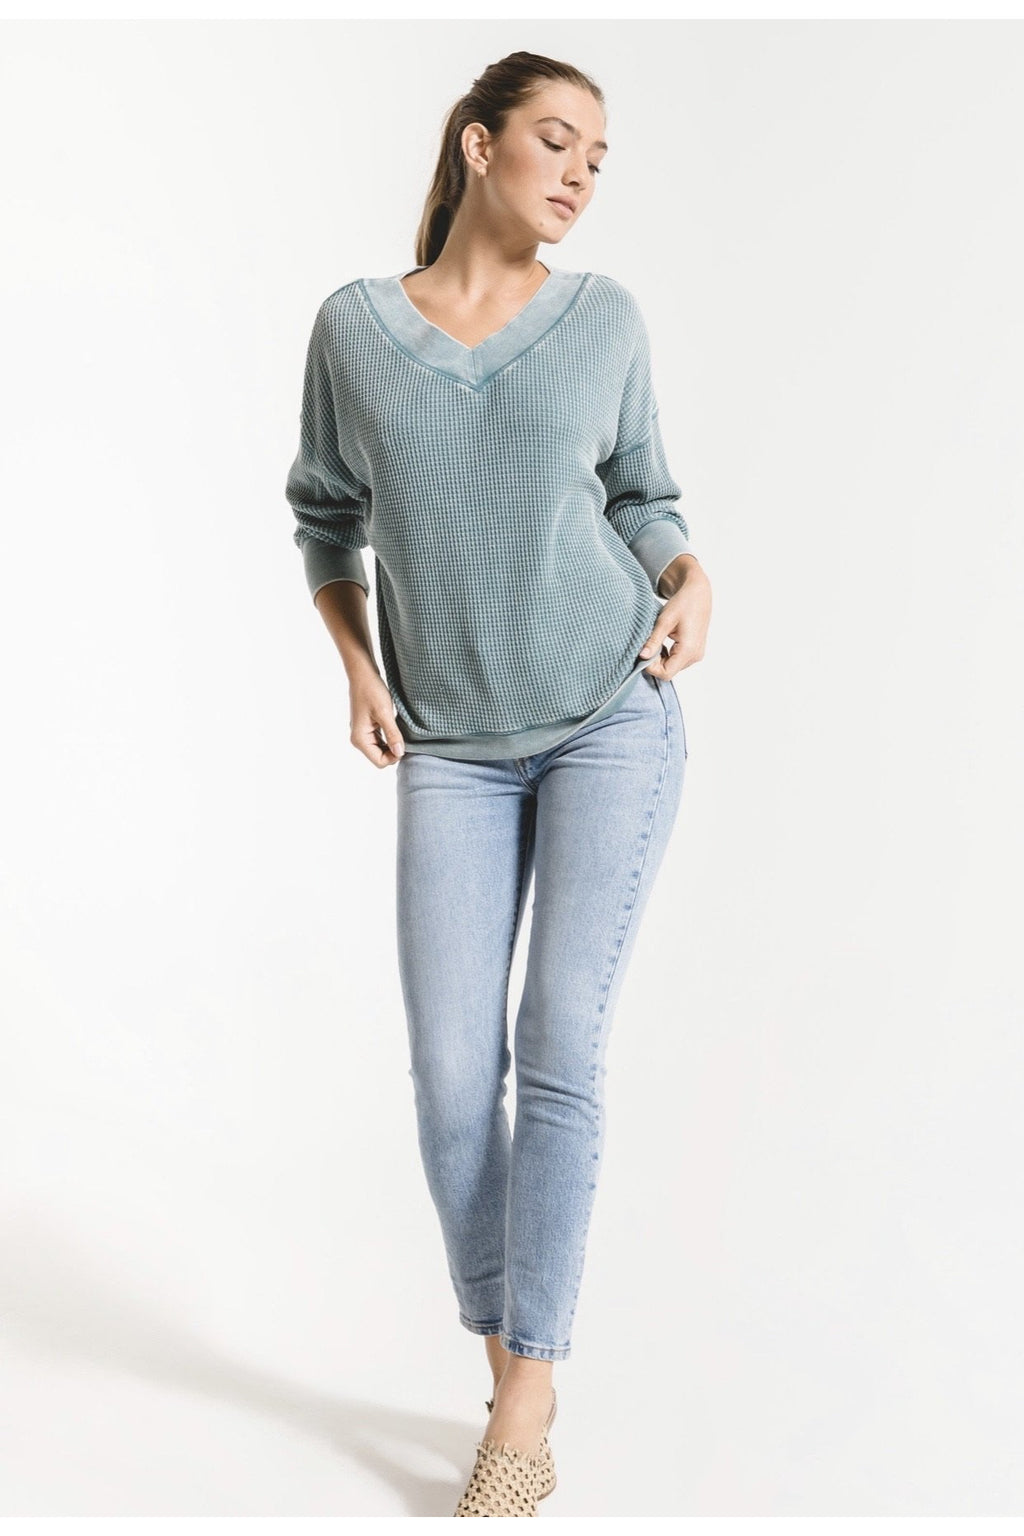 Emilia Teal Thermal Top